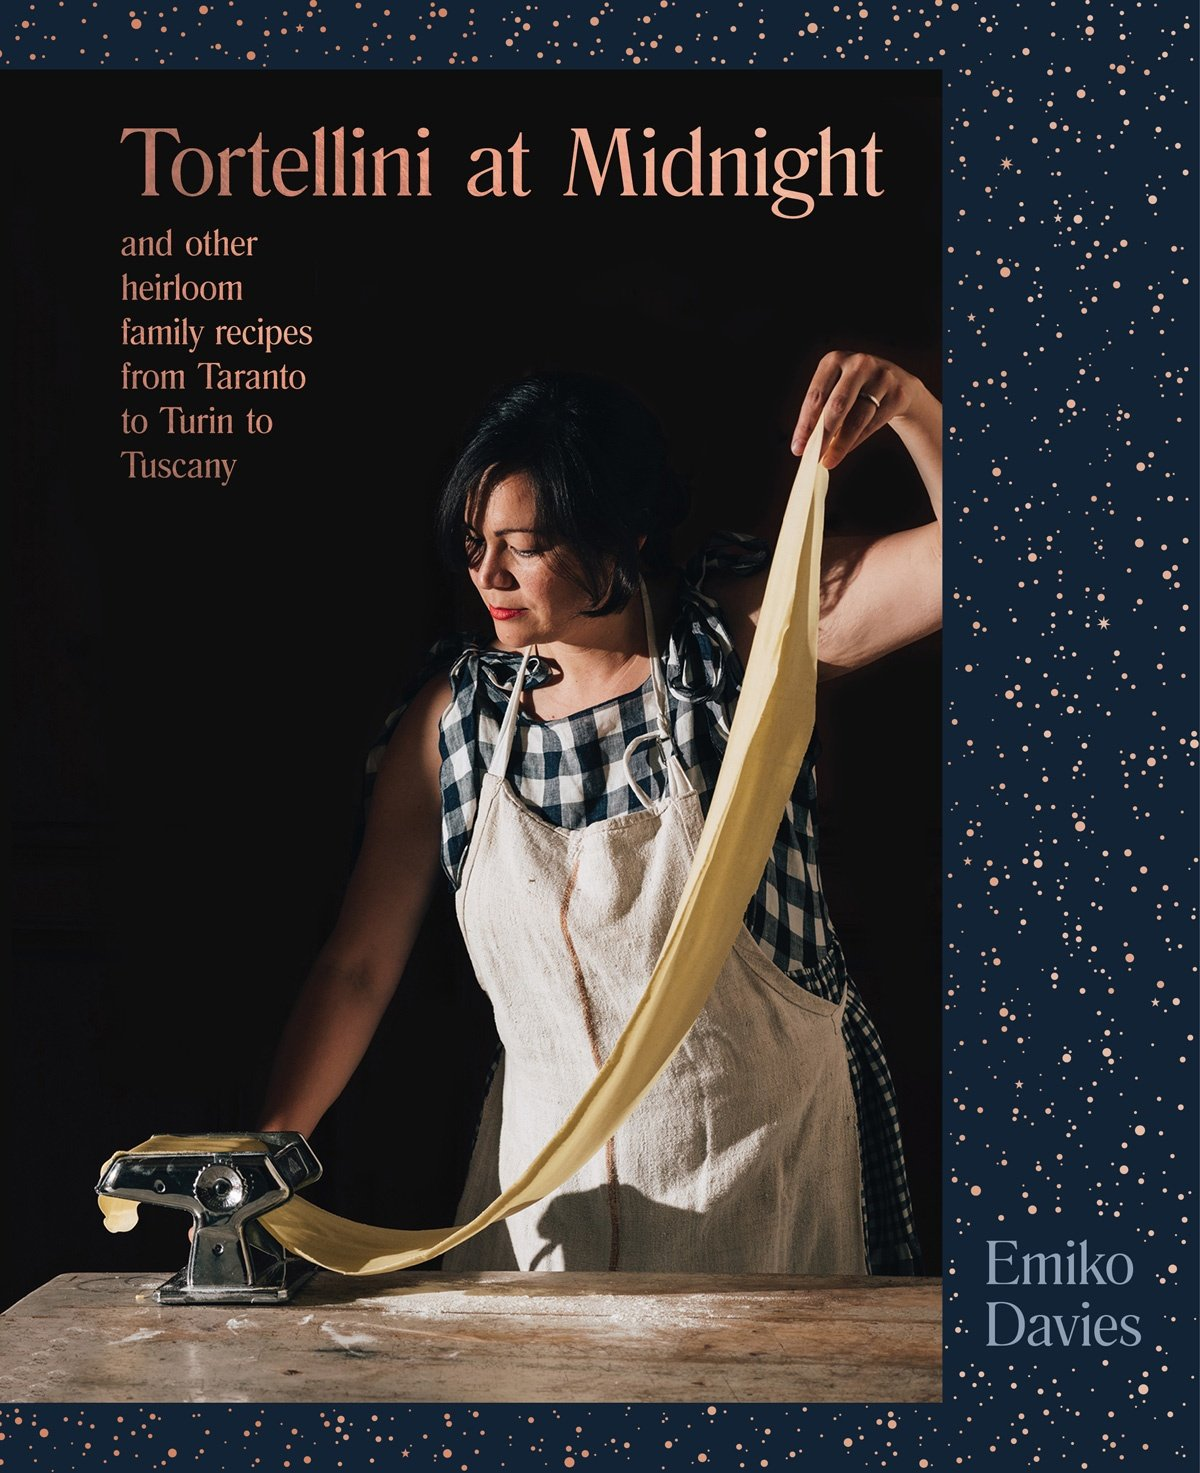 Book cover of Tortellini At Midnight by Emiko Davies